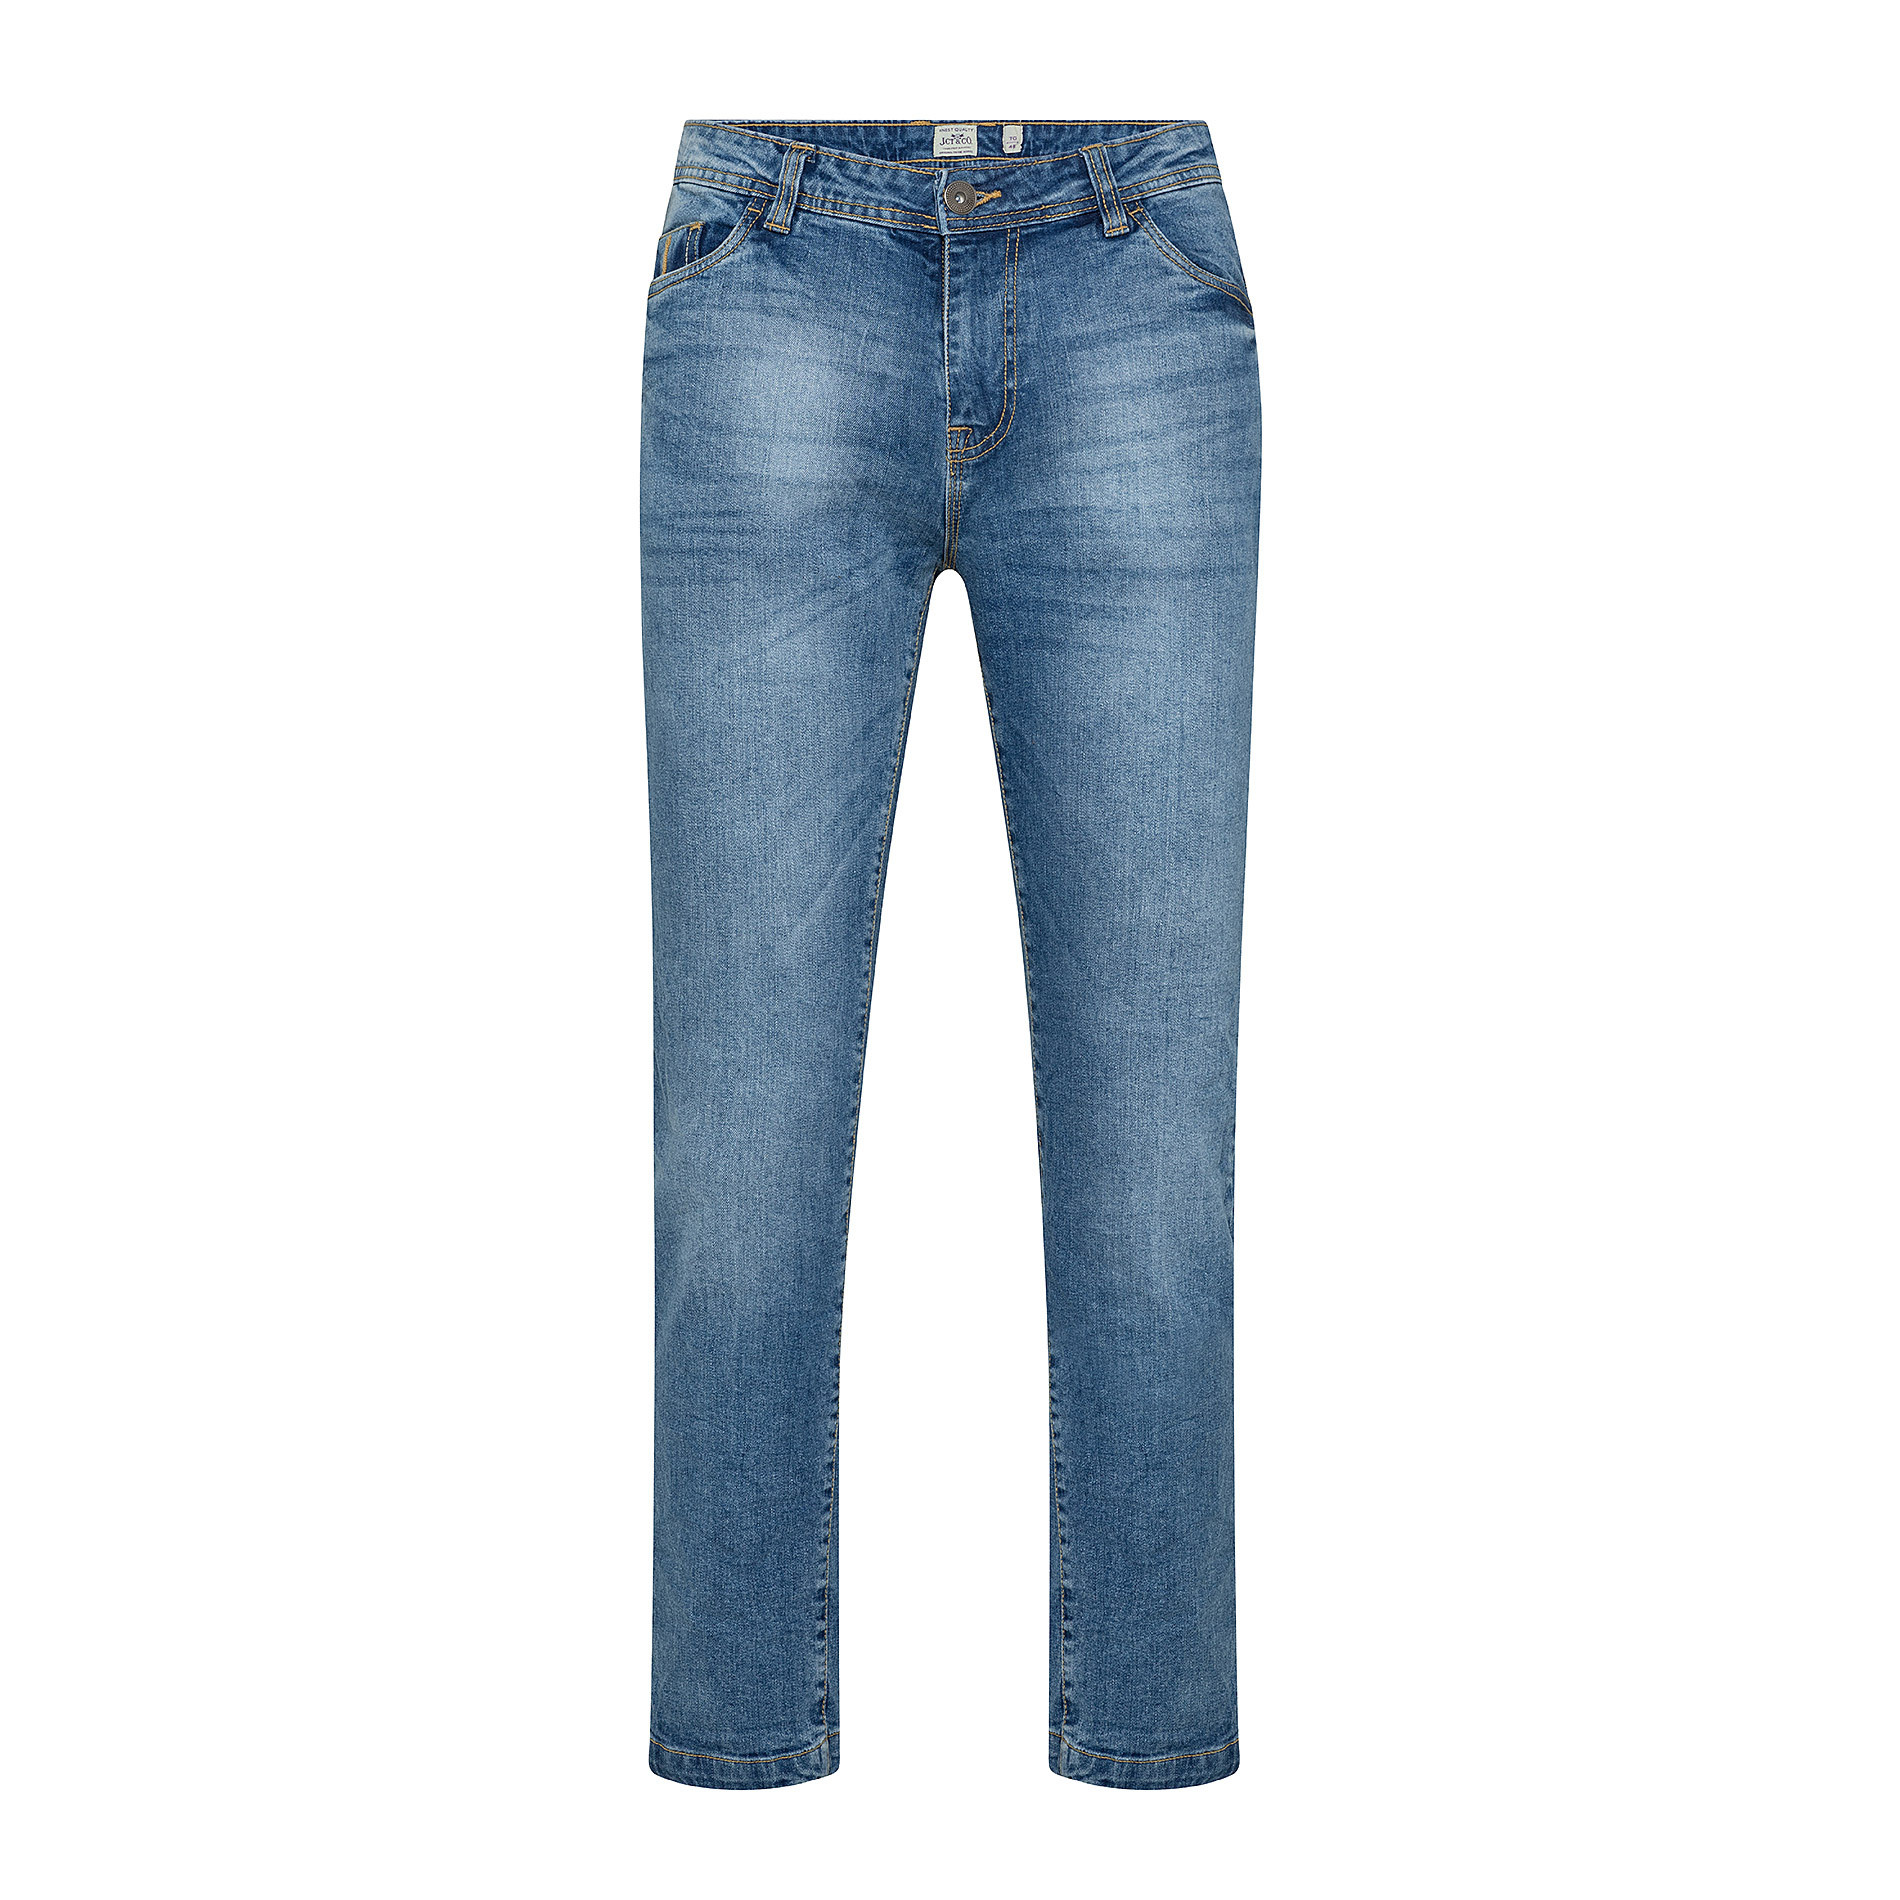 Jeans stretch 5 tasche JCT, Azzurro, large image number 0